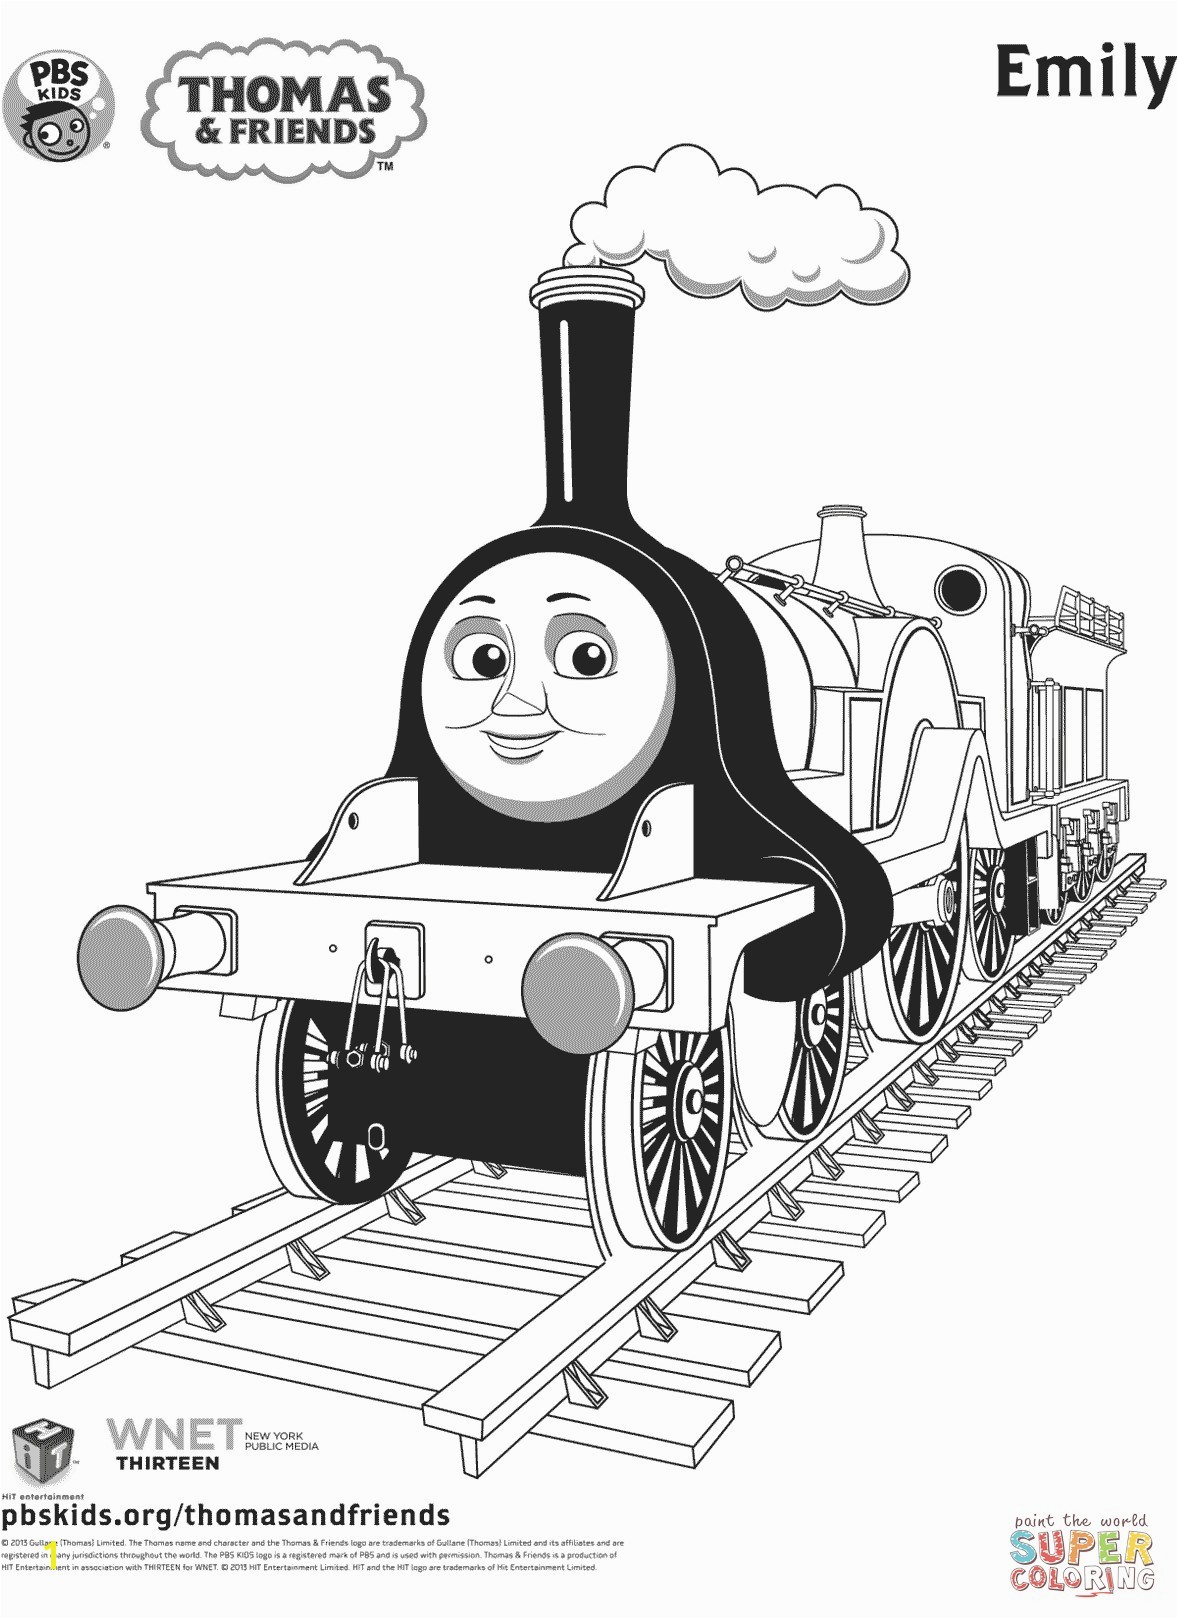 Emily from Thomas & Friends